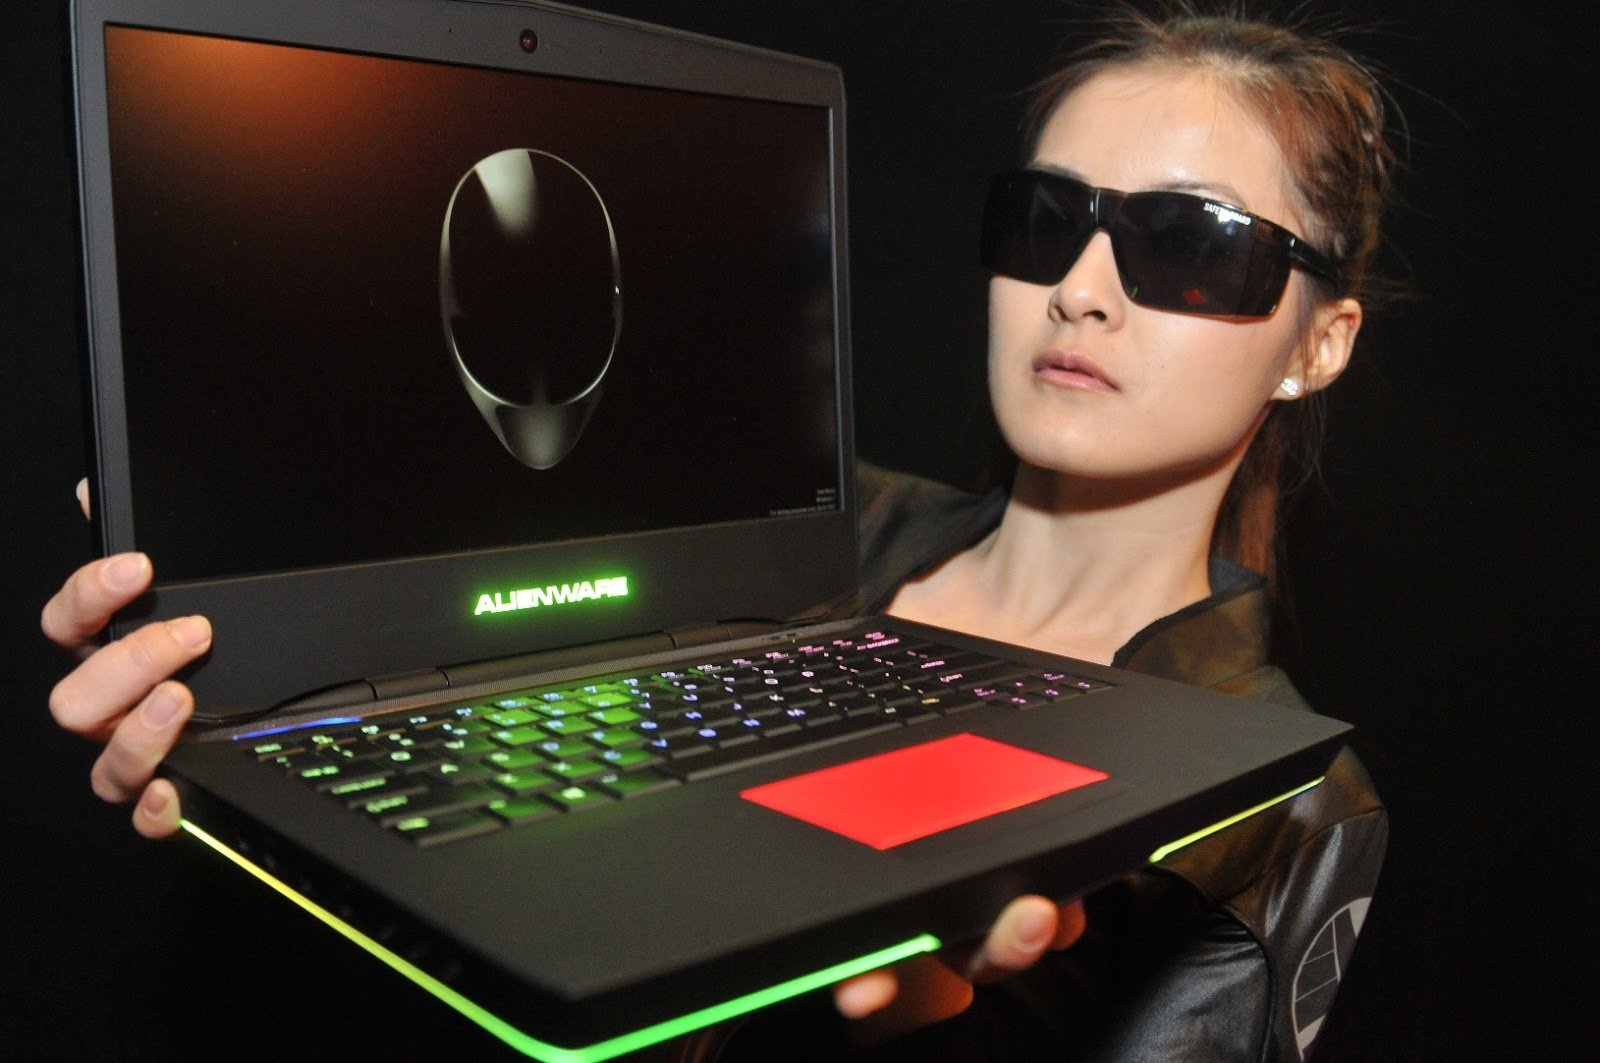 SC Cyberworld Malaysias Latest IT News Alienware